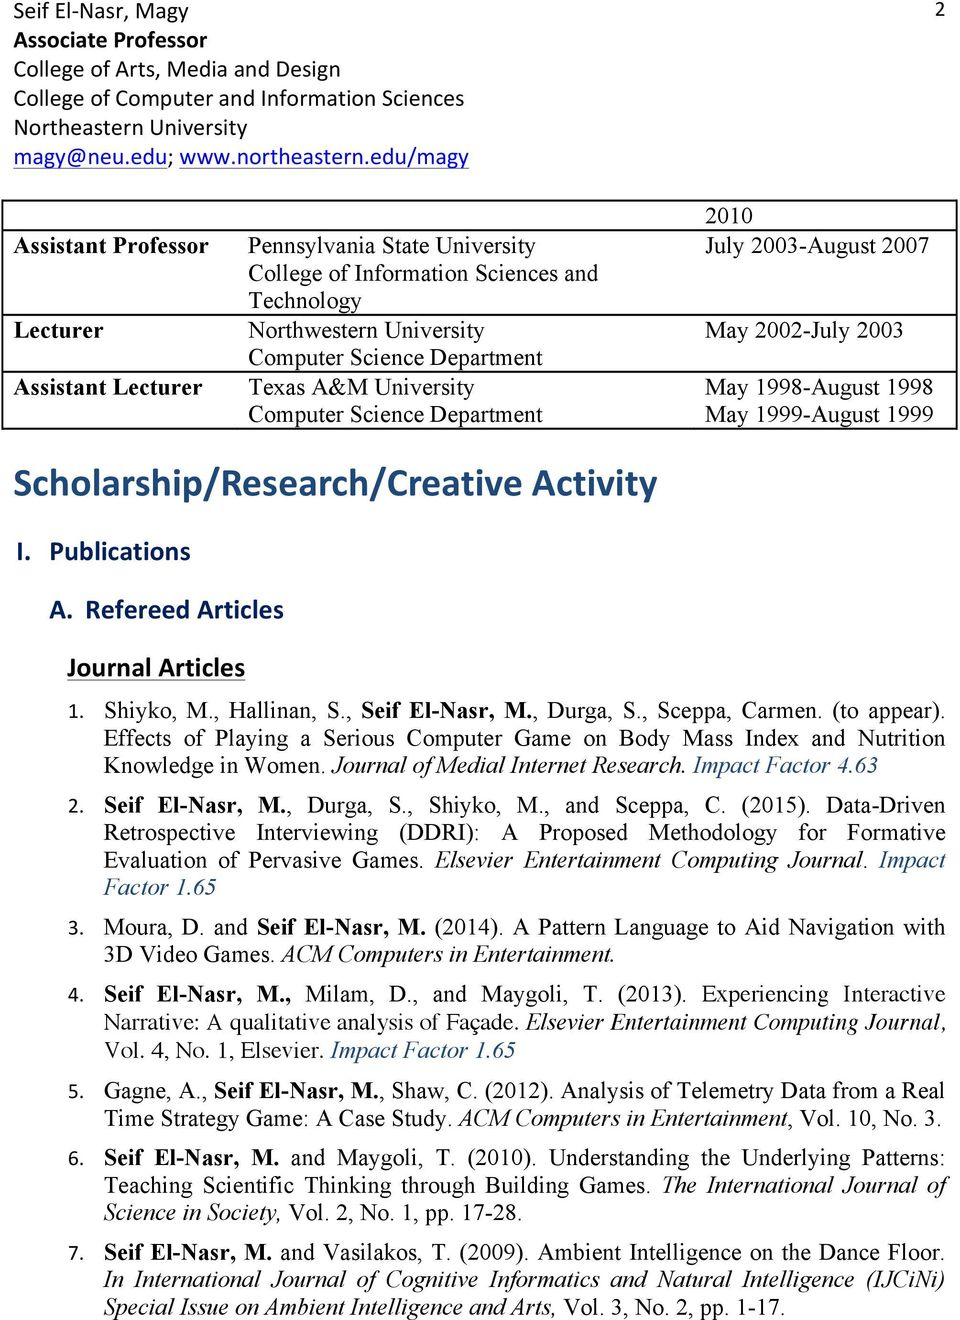 Refereed Articles Journal Articles 1. Shiyko, M., Hallinan, S., Seif El-Nasr, M., Durga, S., Sceppa, Carmen. (to appear).